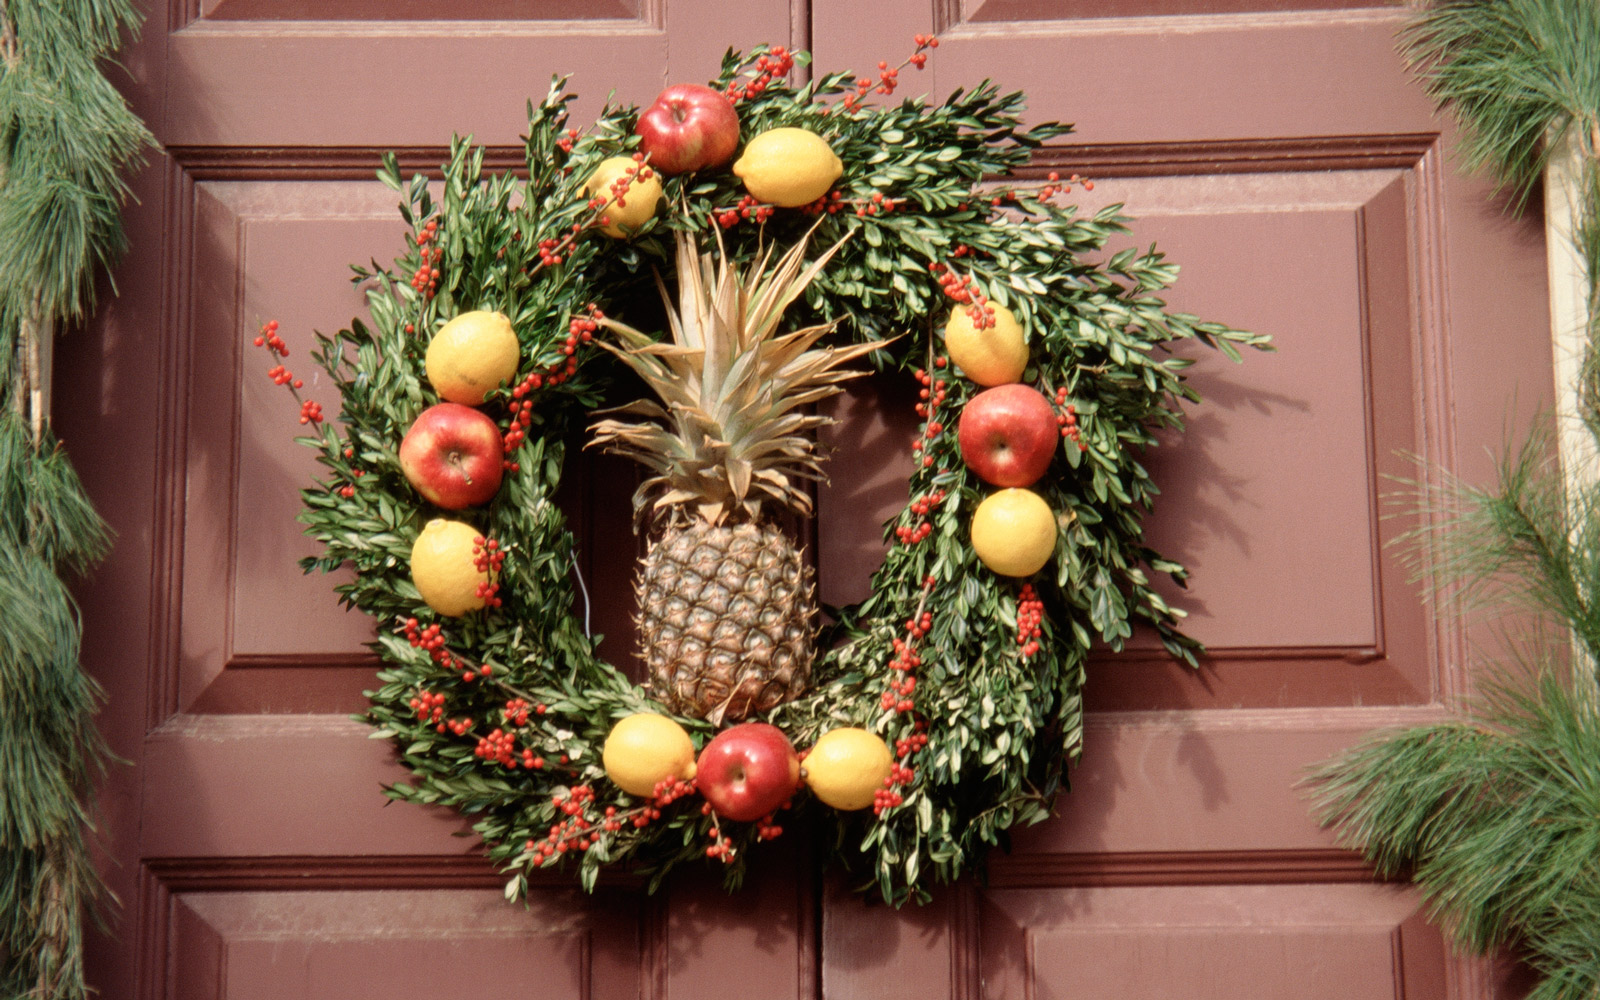 Forget Christmas Trees, Decorated Pineapples Are the New Instagram Trend